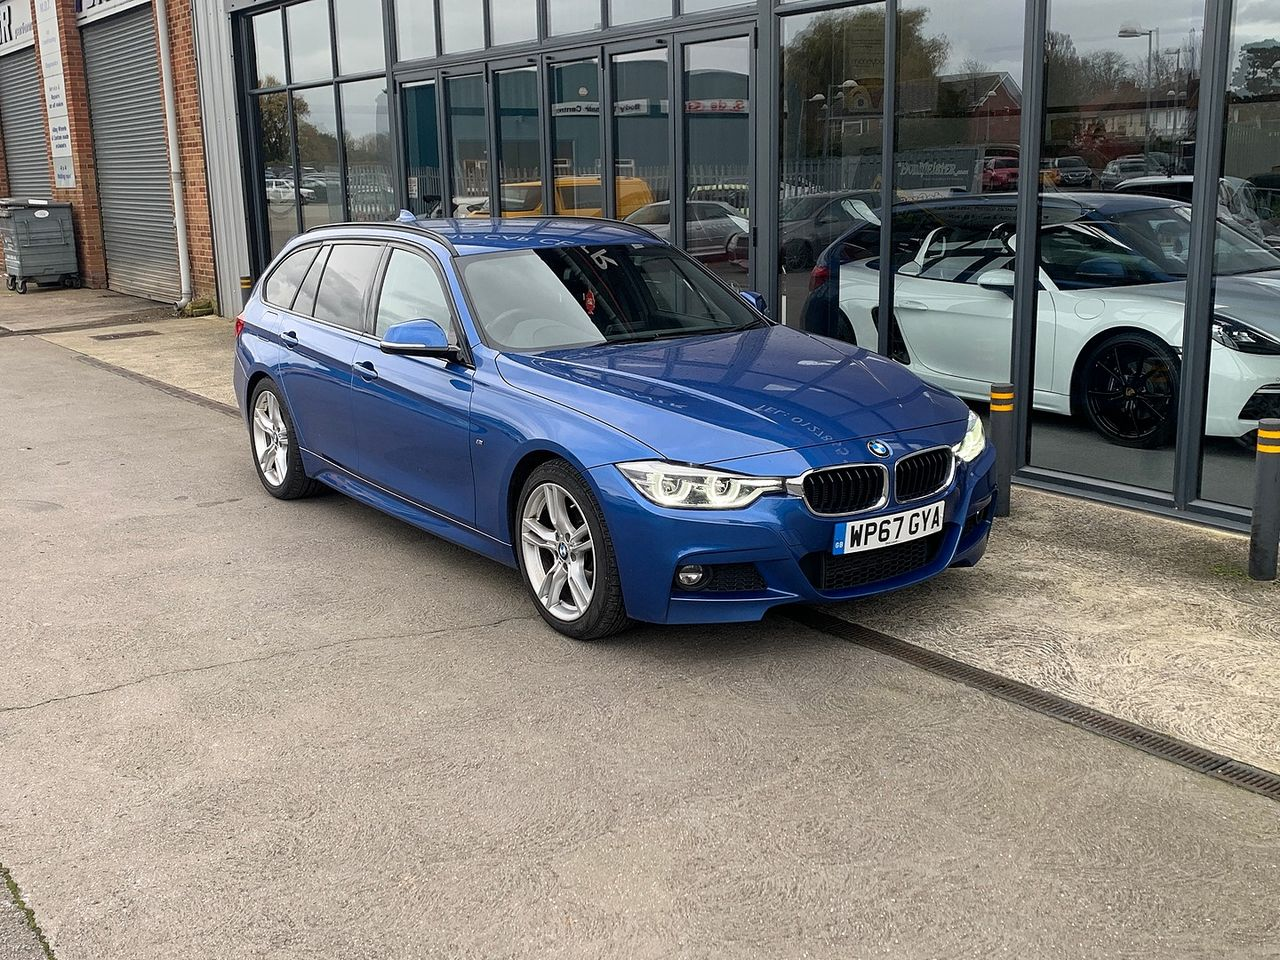 2017 BMW 3 Series  320d M Sport - Picture 2 of 10